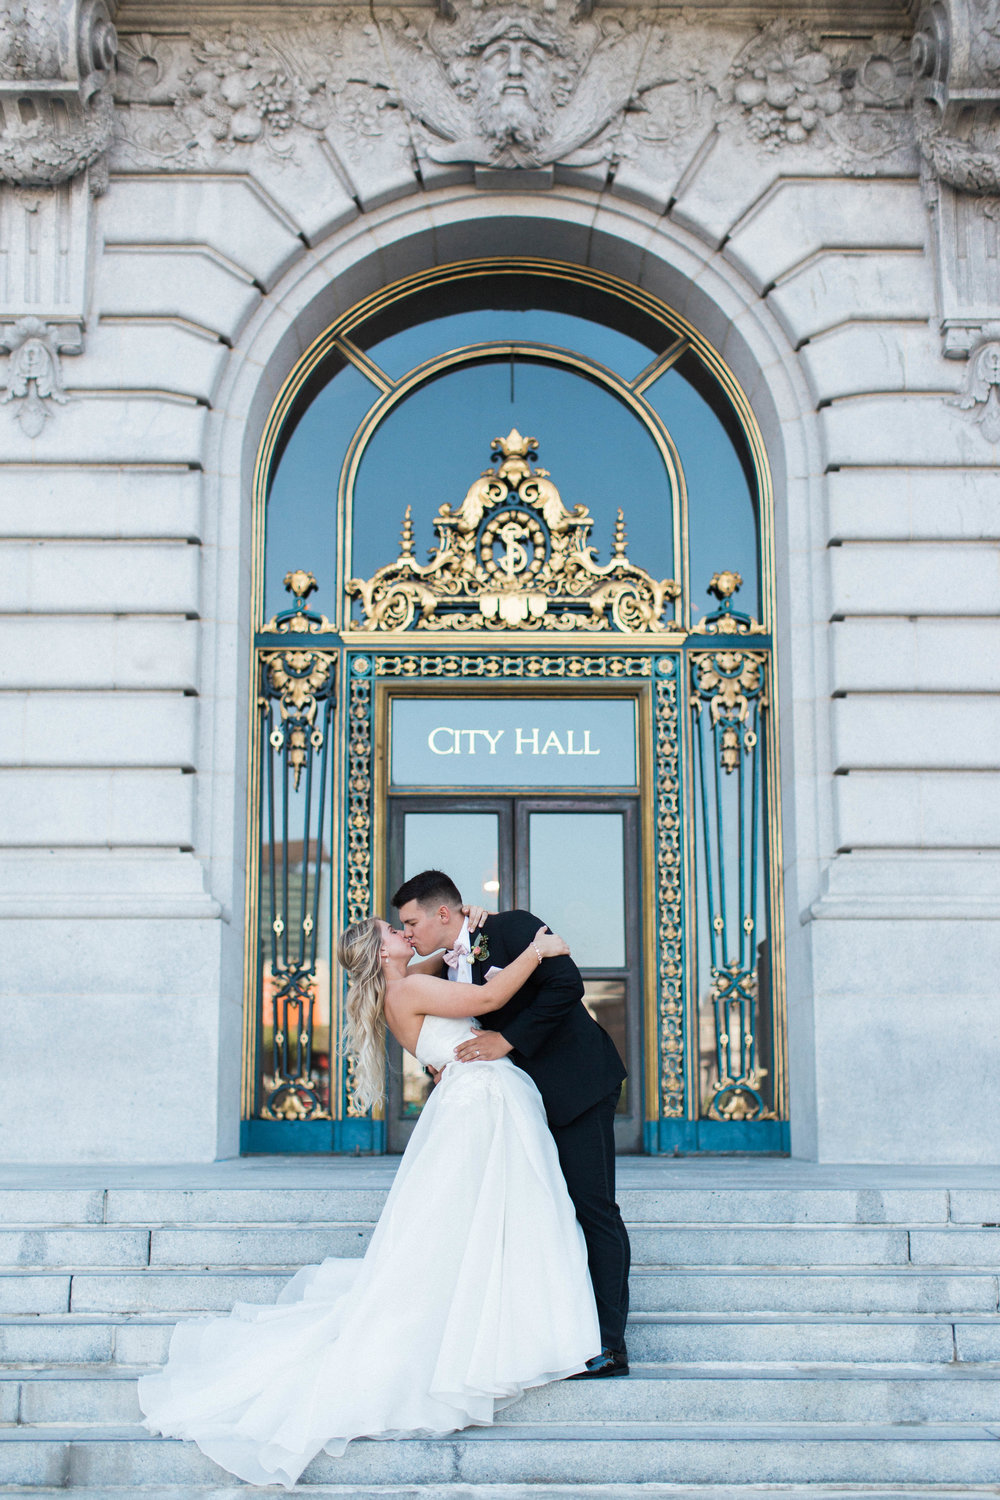 DennisRoyCoronel_Photography_SanFranciscoCityHall_Wedding-101.jpg